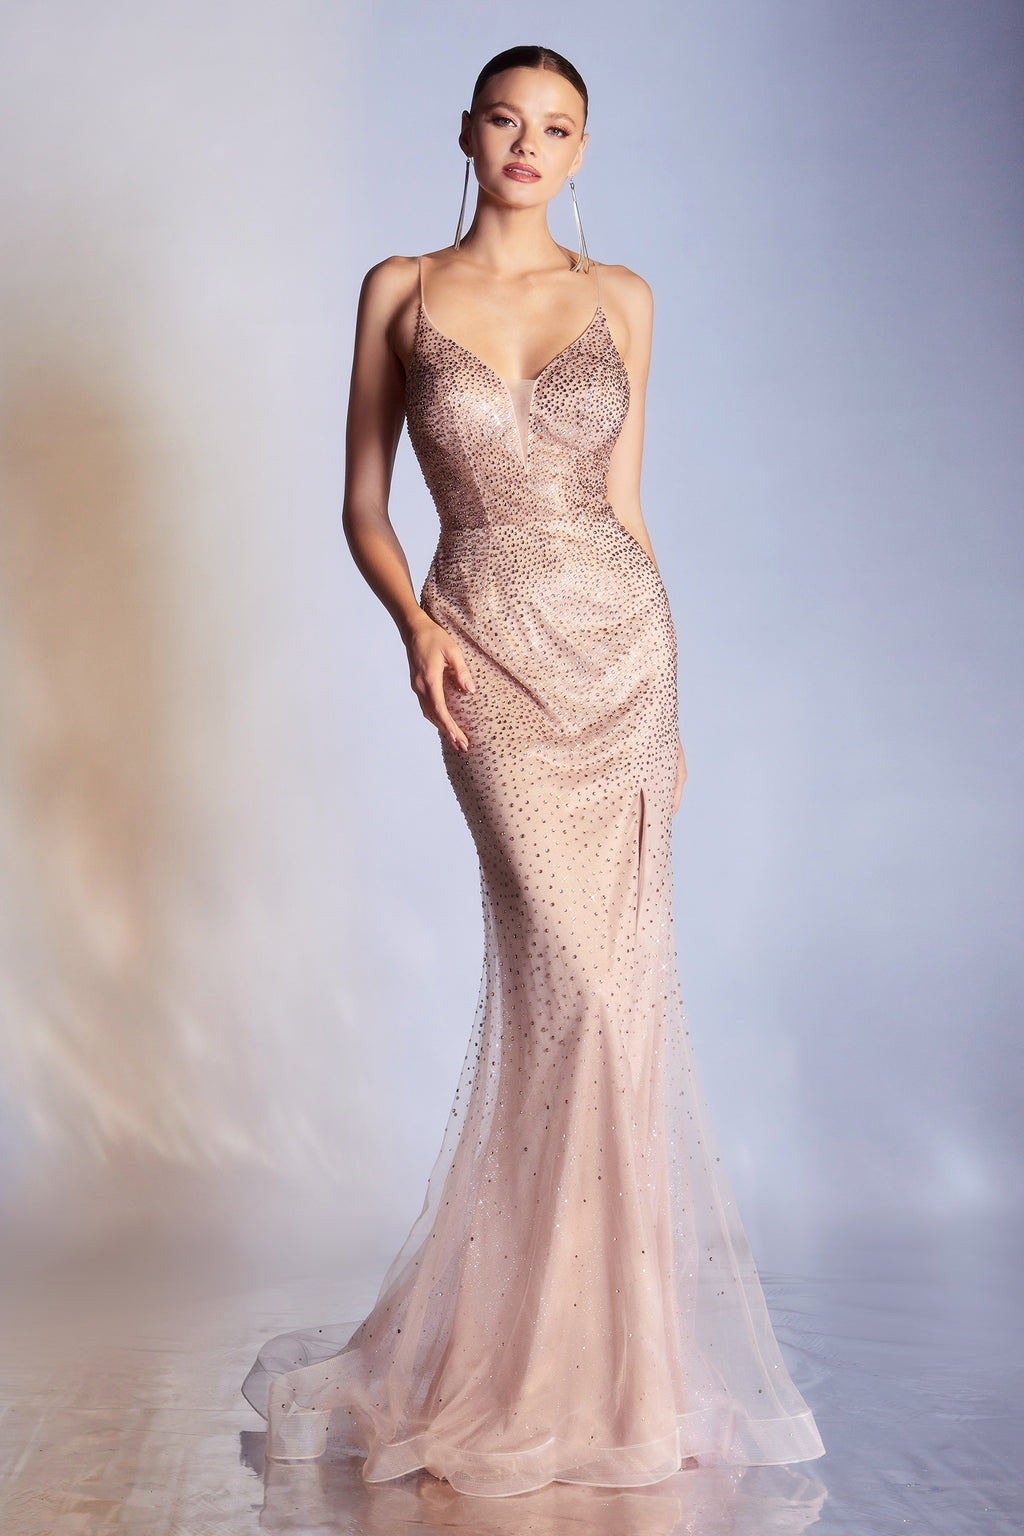 Gorgeous V-Neckline Fitted Gown with Rhinestone Detailing and Leg Slit #CDCR861